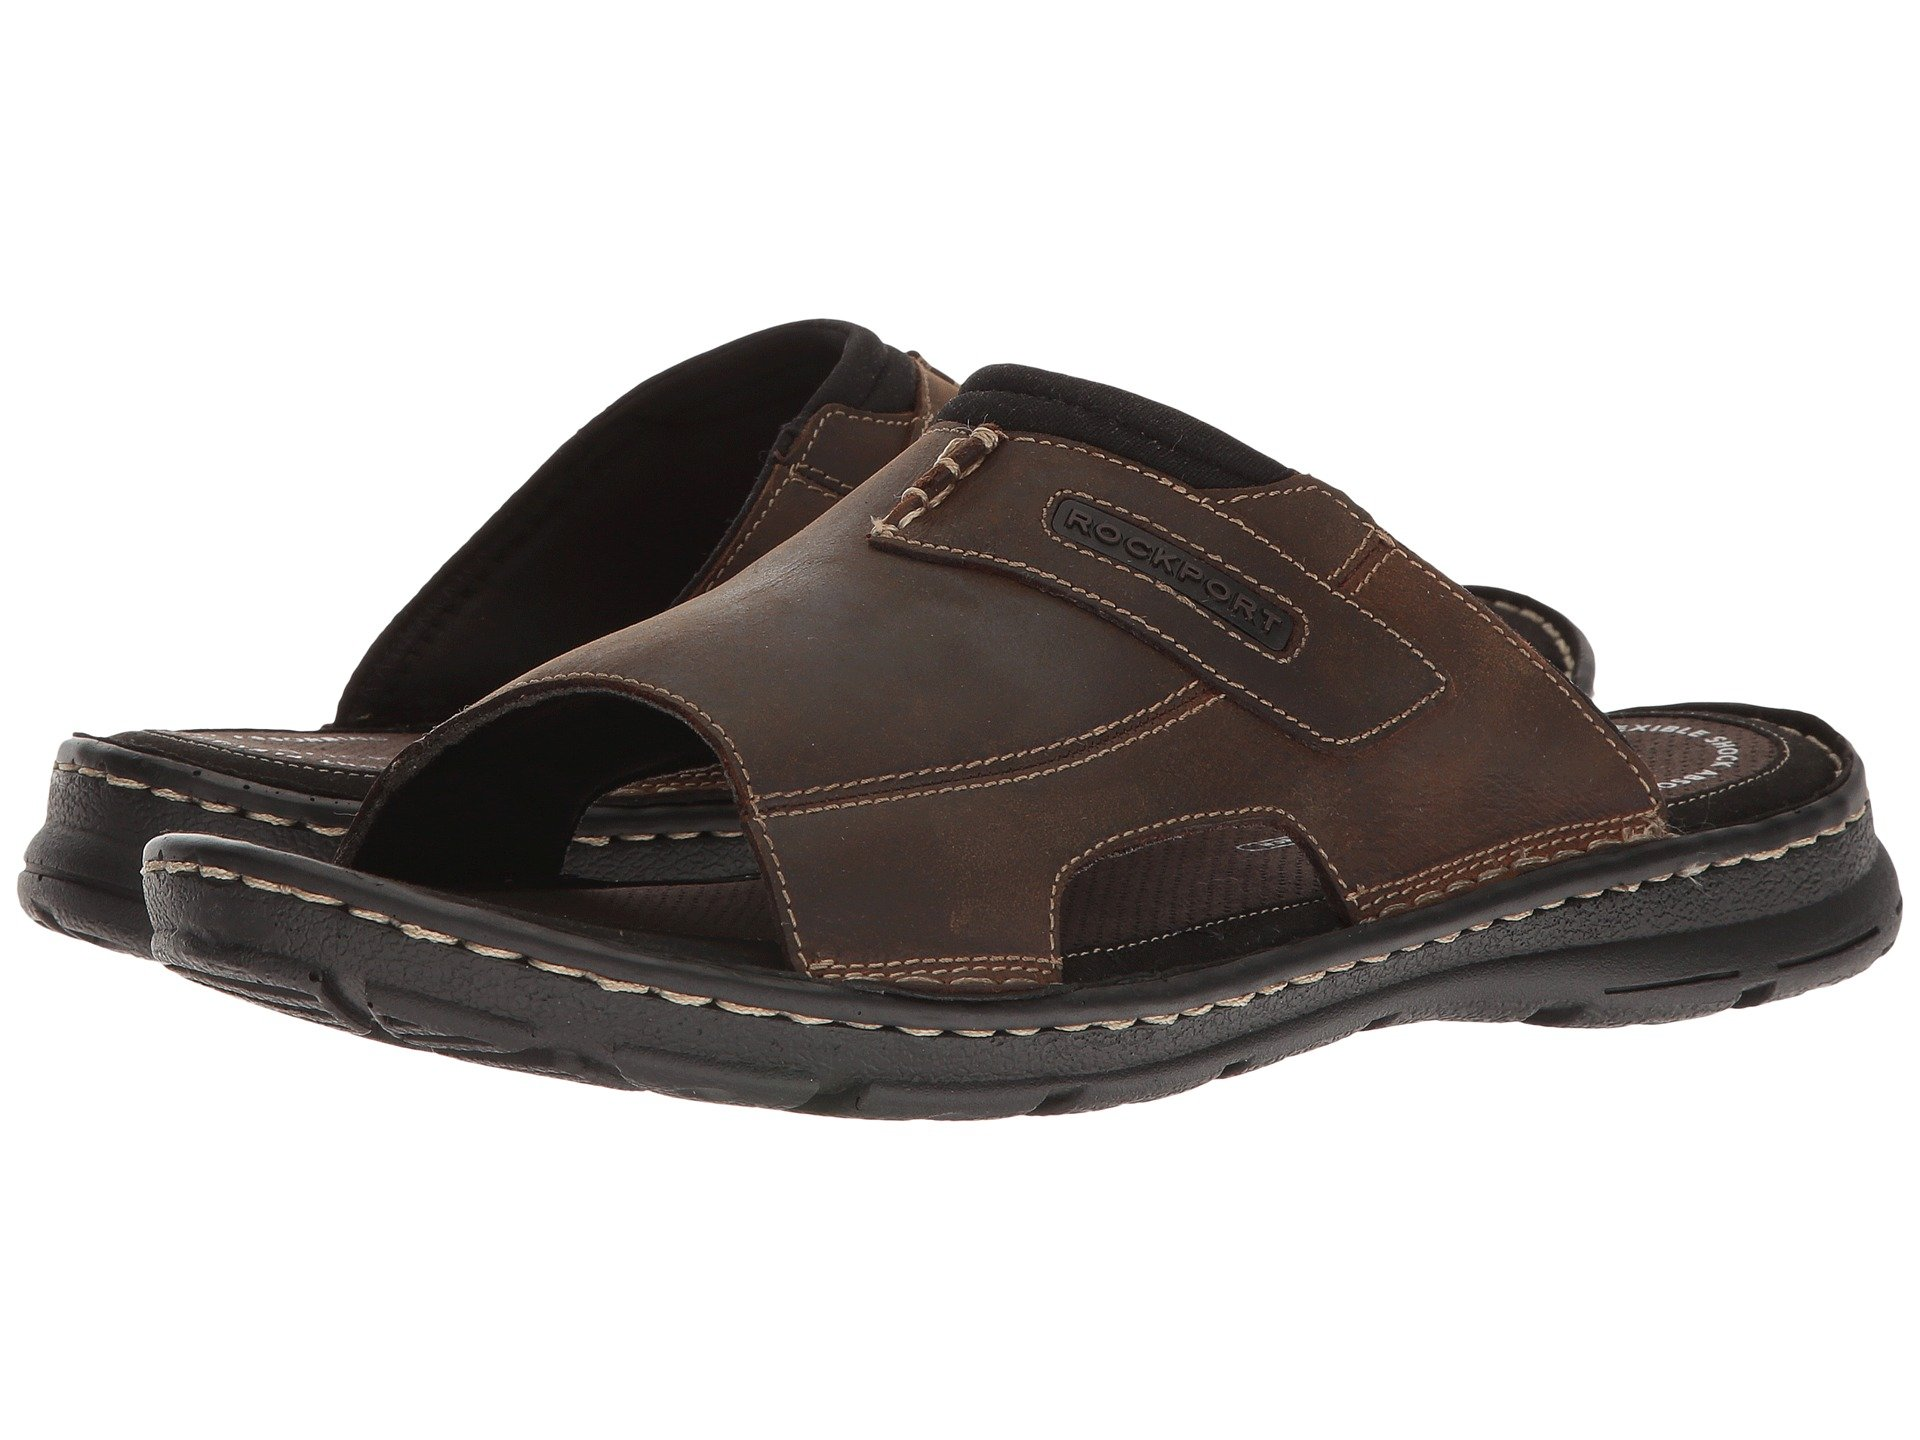 15699561de52 Men s Leather Sandals + FREE SHIPPING